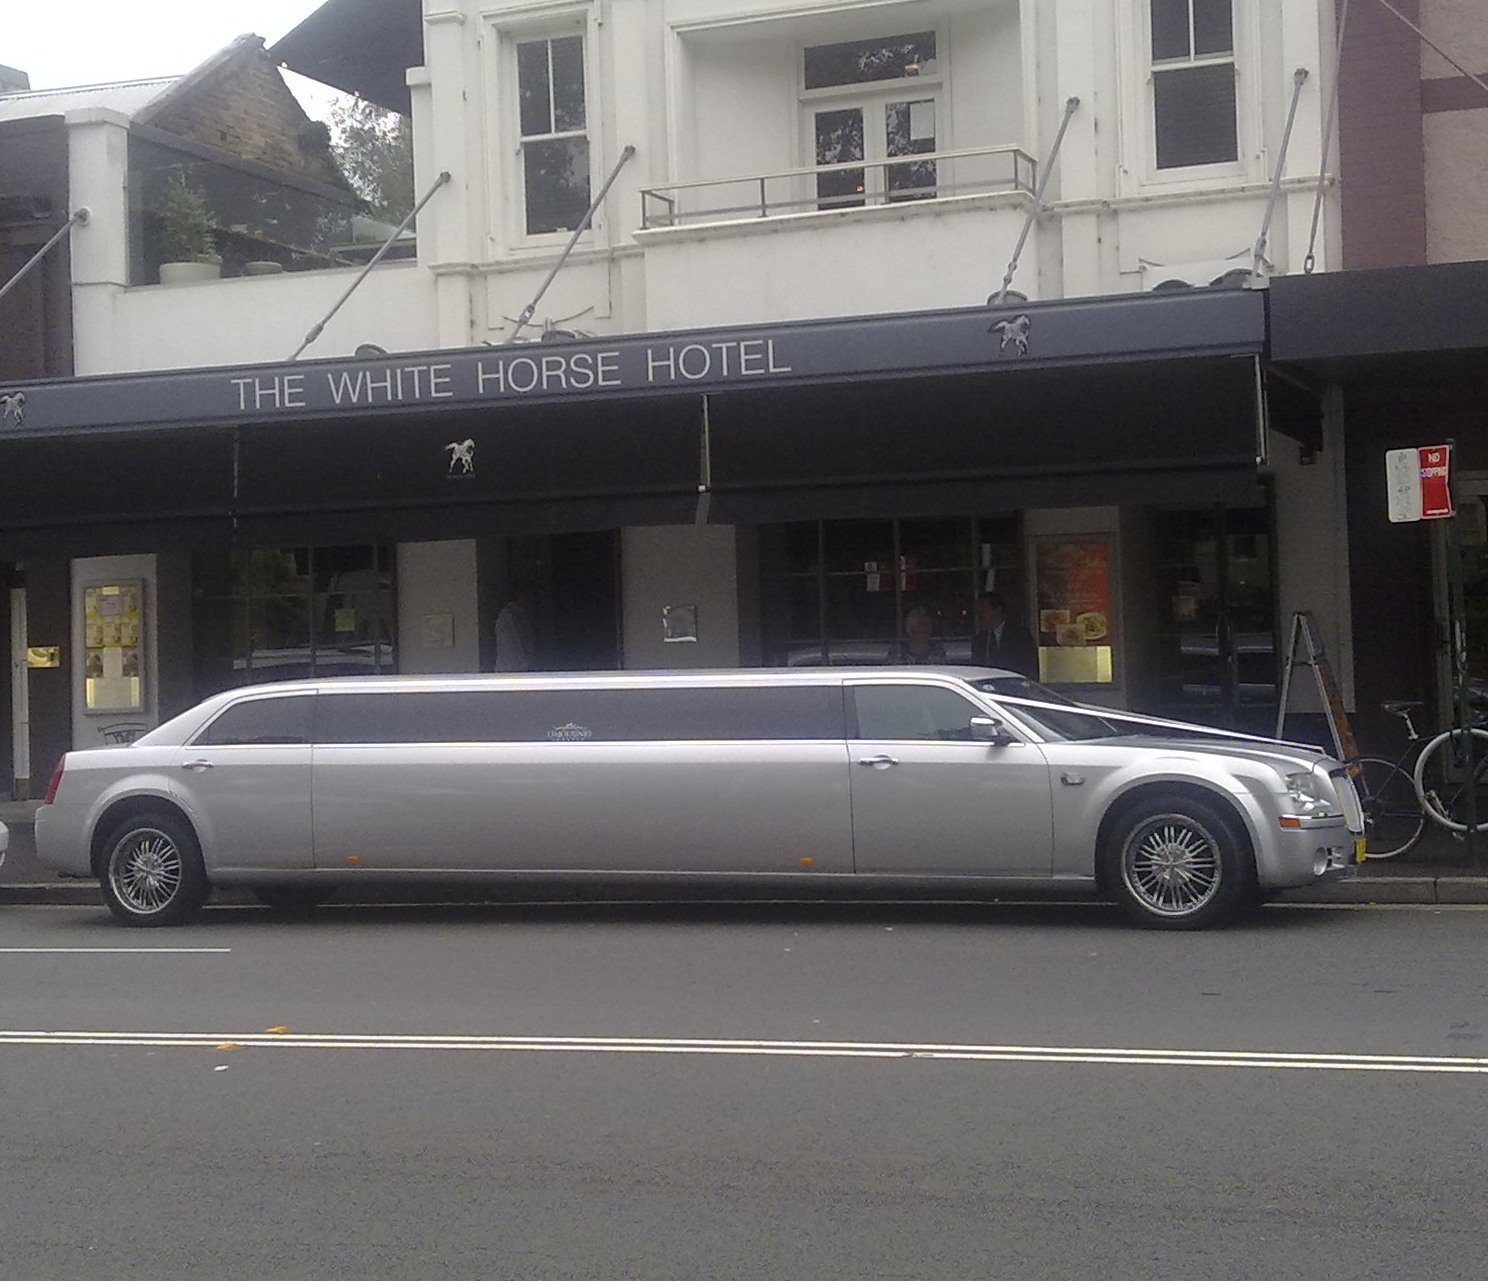 On the way home I spotted this great wedding limo on Crown Street